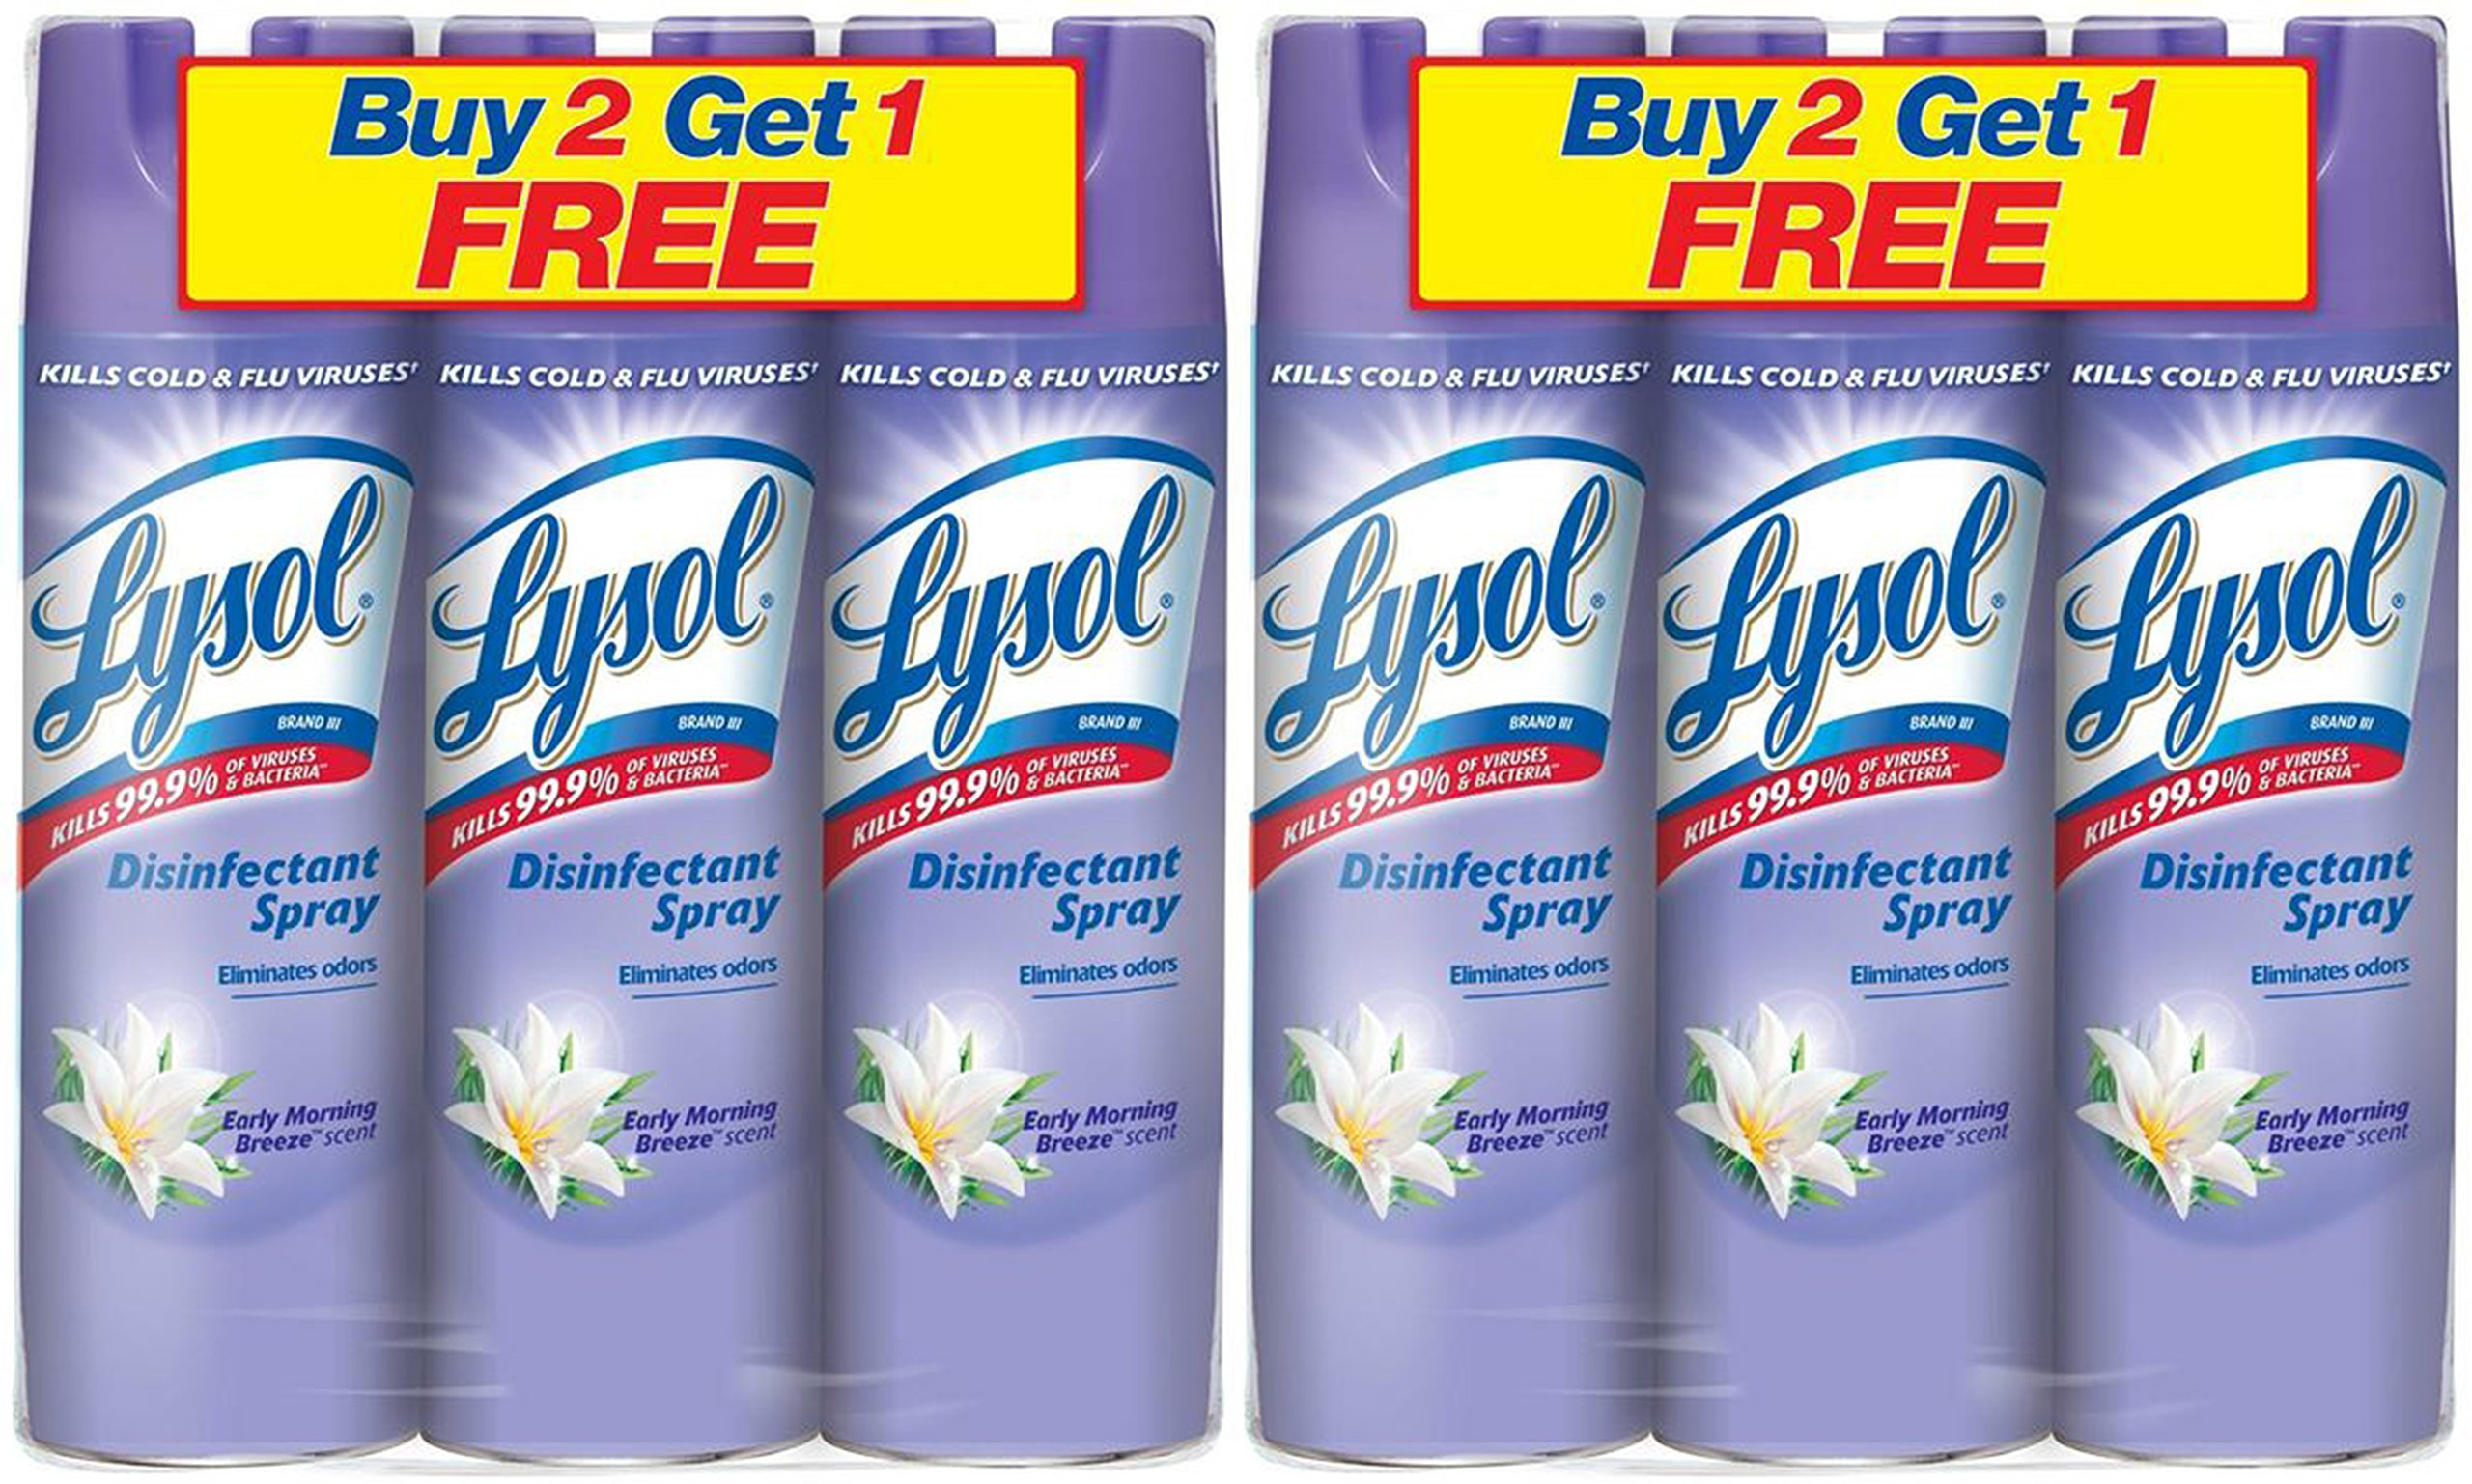 A World Of Deals Lysol Disinfectant Spray, Early Morning Breeze Scent, 19 oz., pack of 6